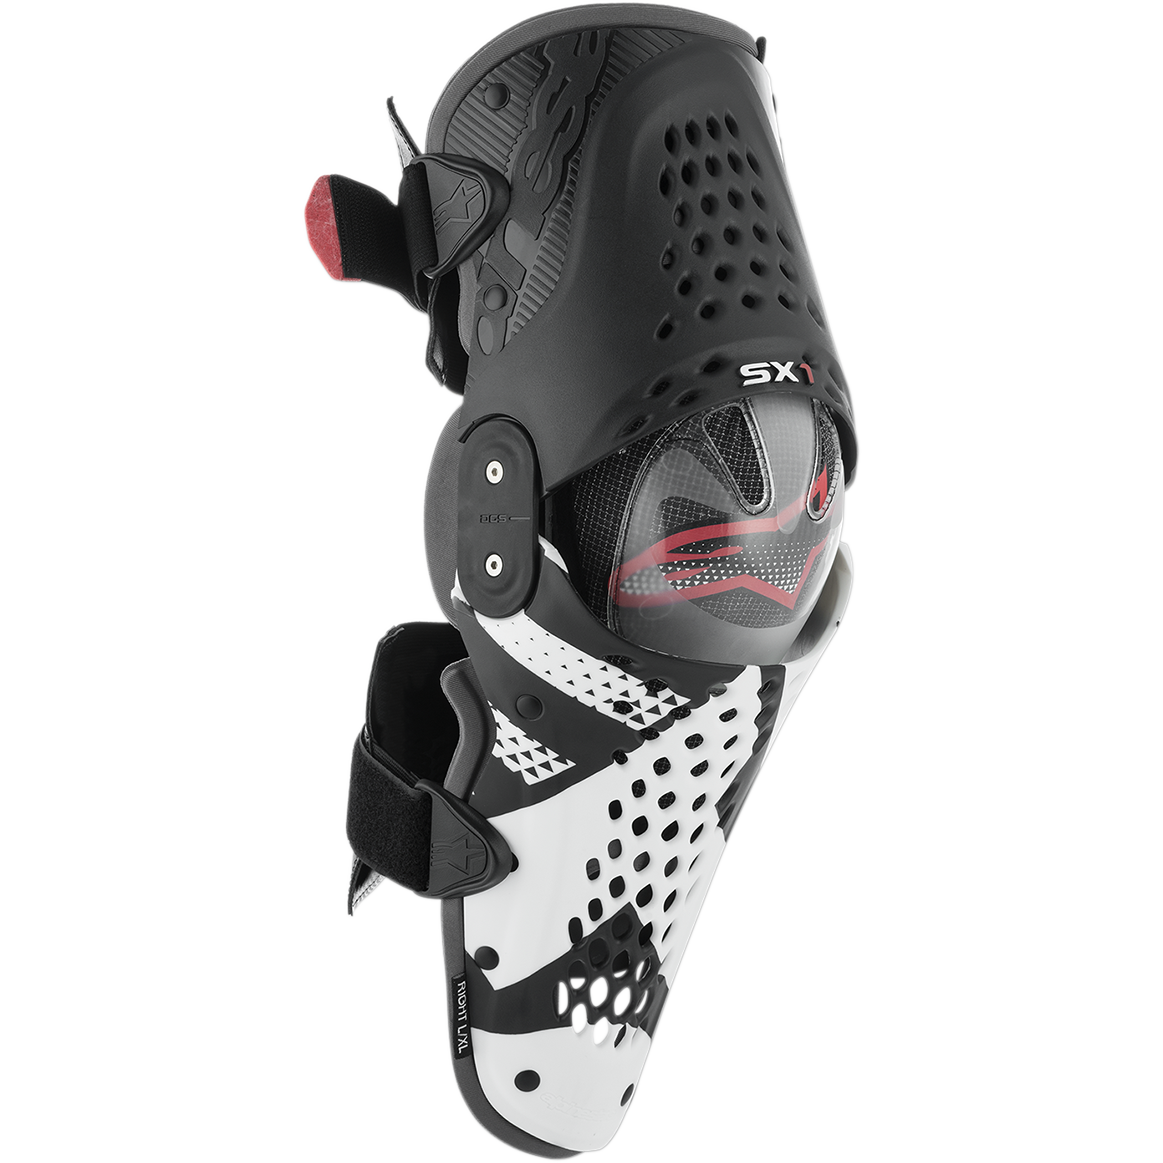 Alpinestars SX-1 Knee Guards-Black//Antracite-L//XL